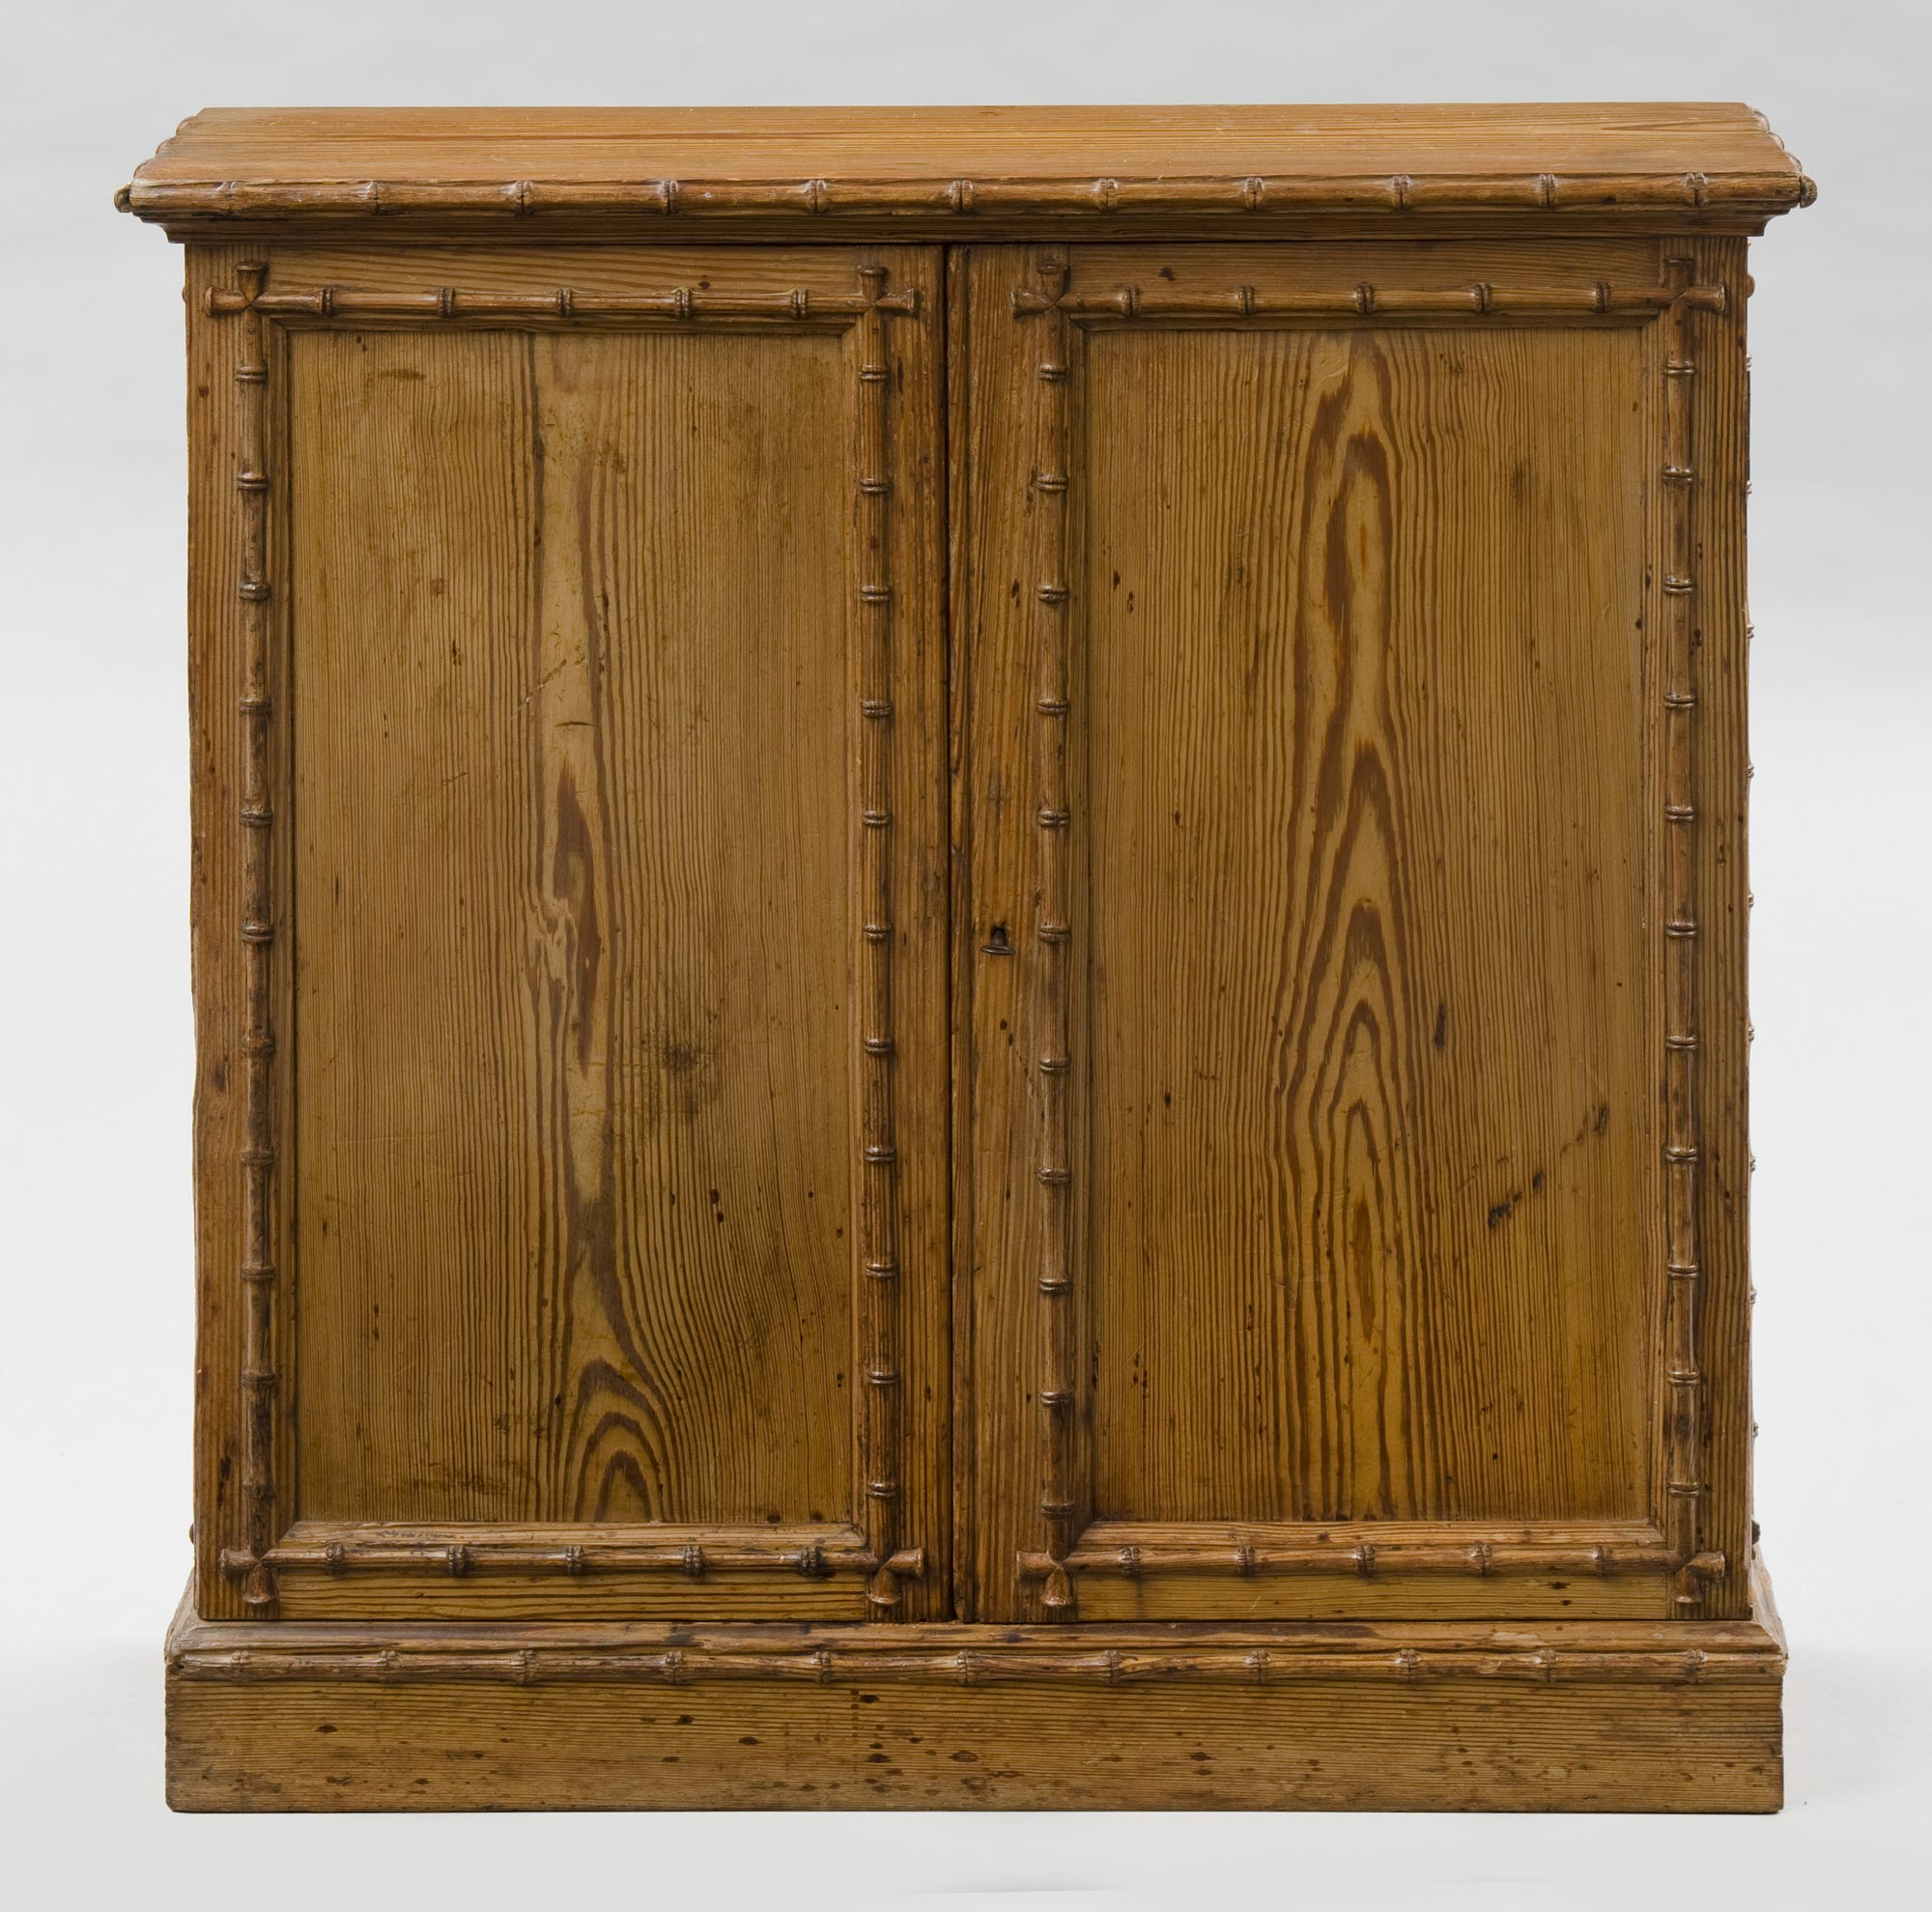 Charmant Pine English Antique Faux Bamboo Cabinet · Pine English Antique Faux Bamboo  Cabinet ...